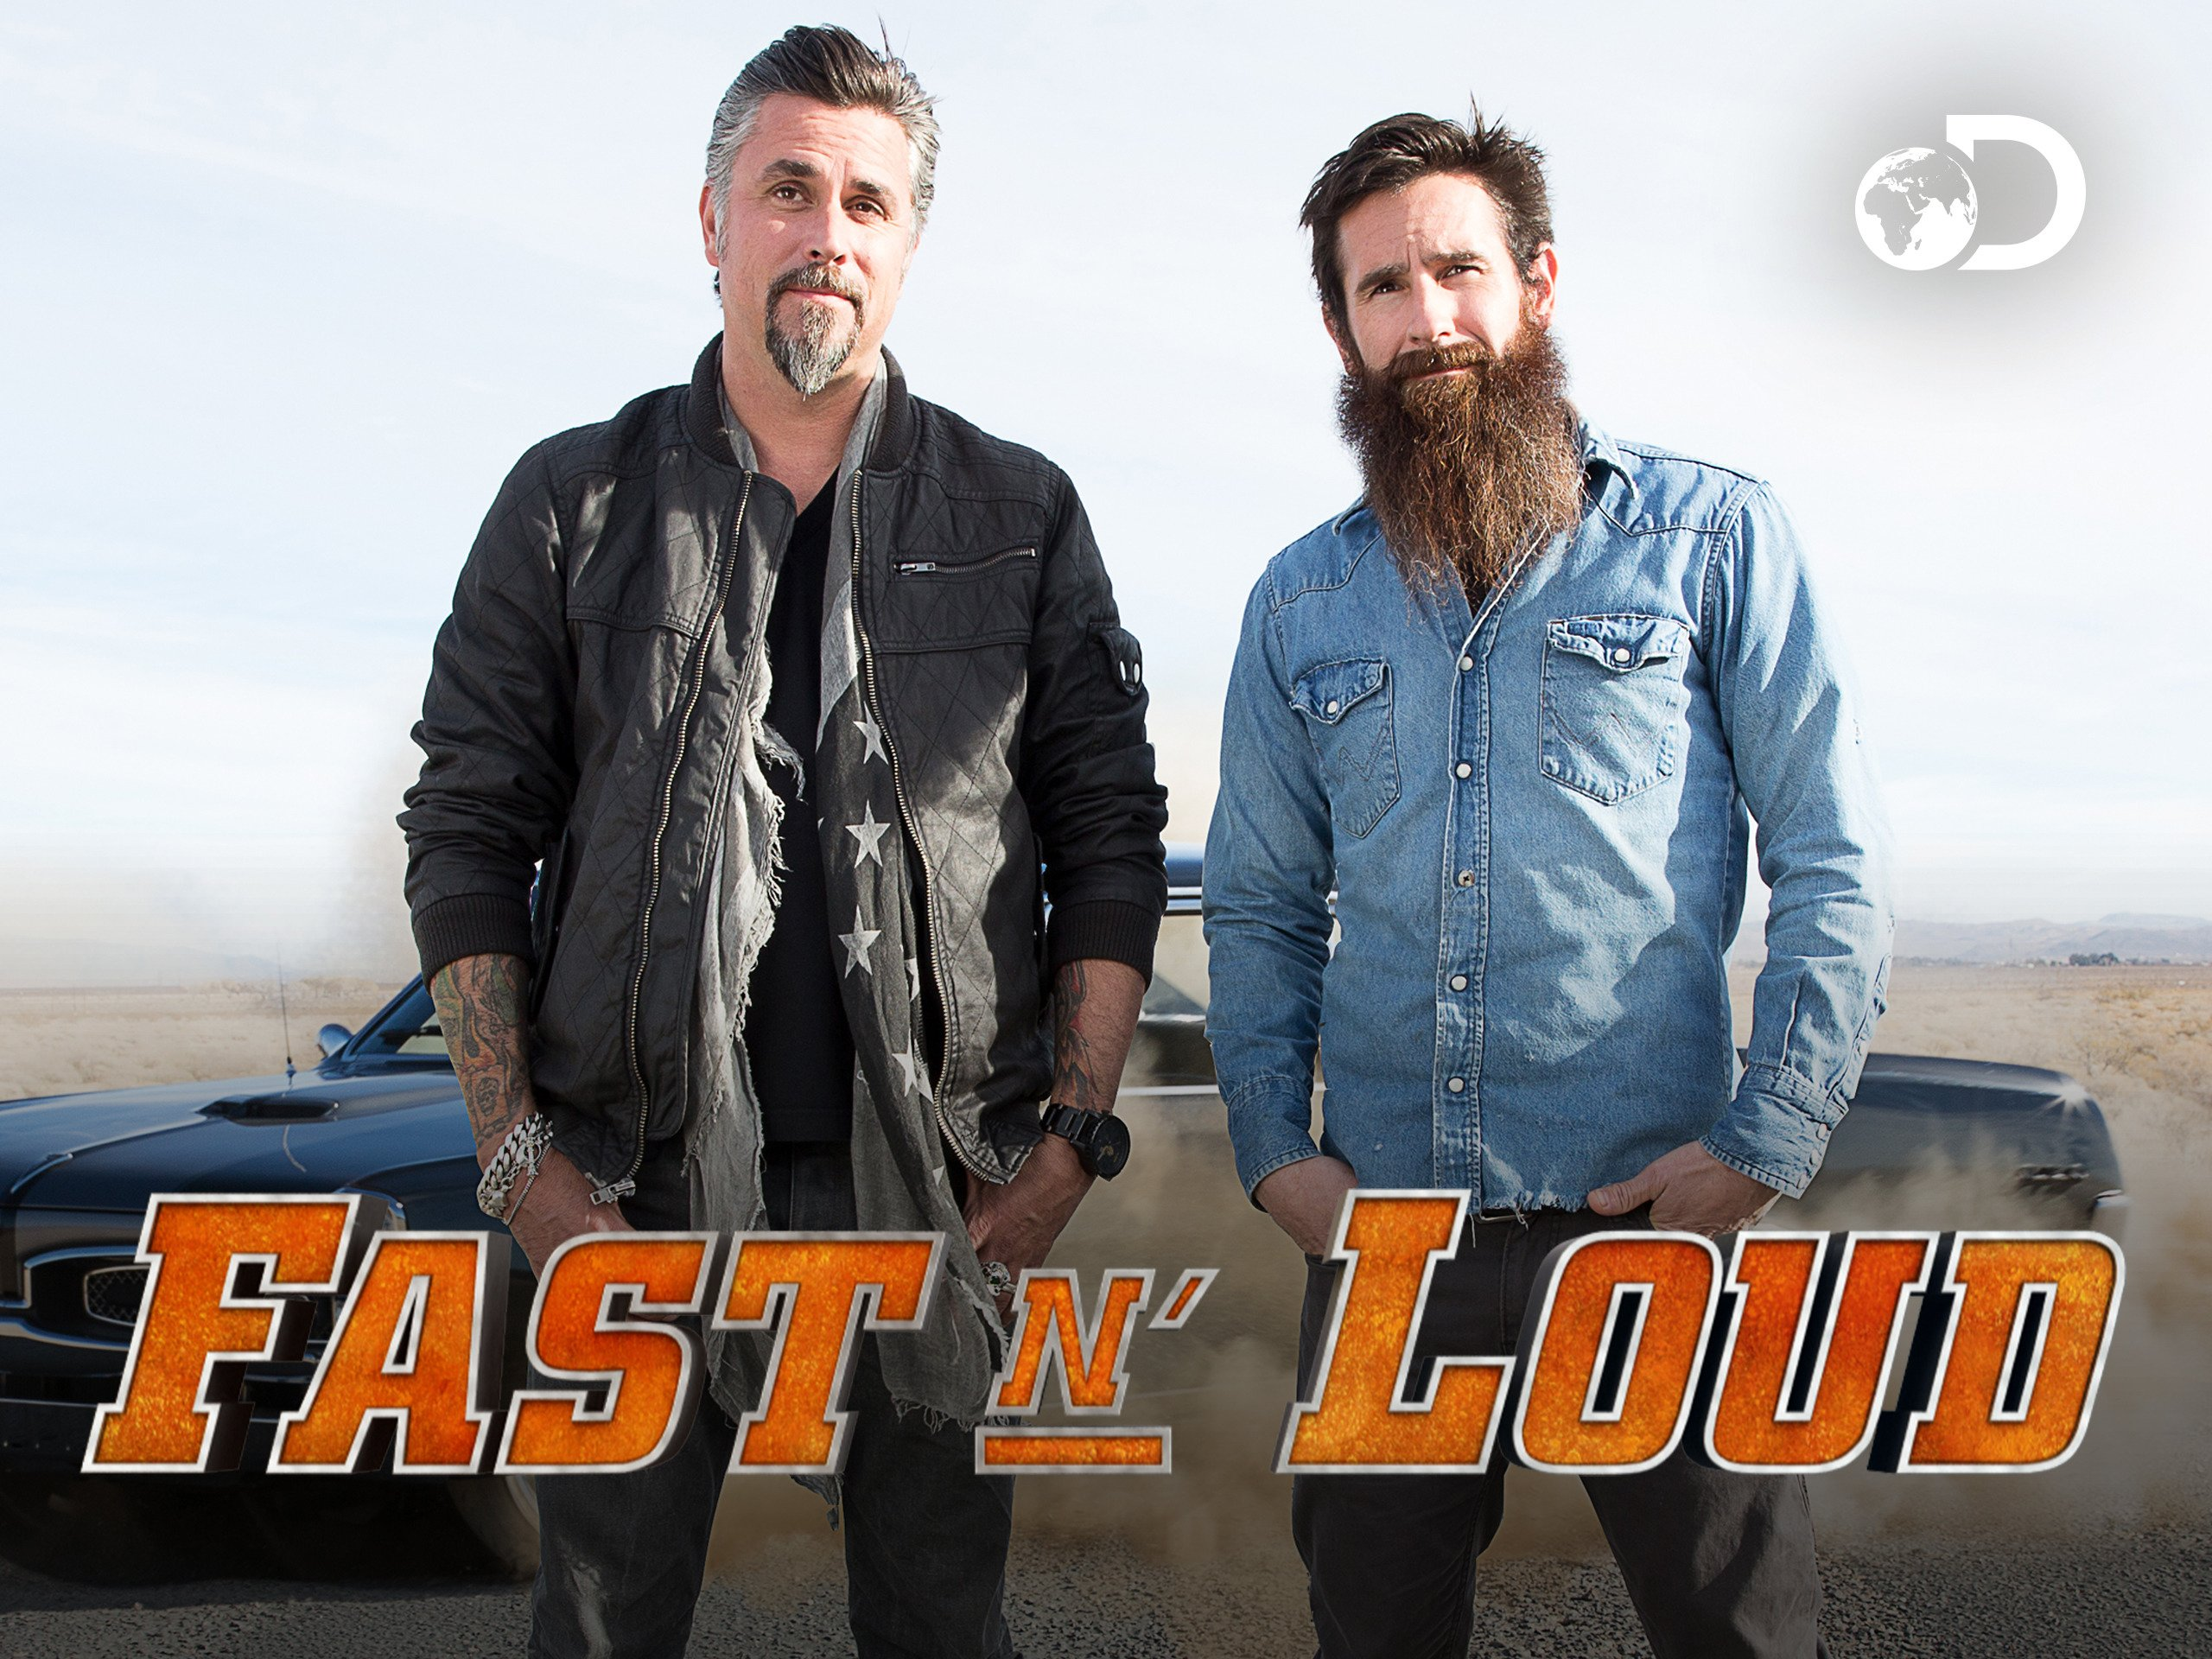 fast and loud series 4 episode 16 uk